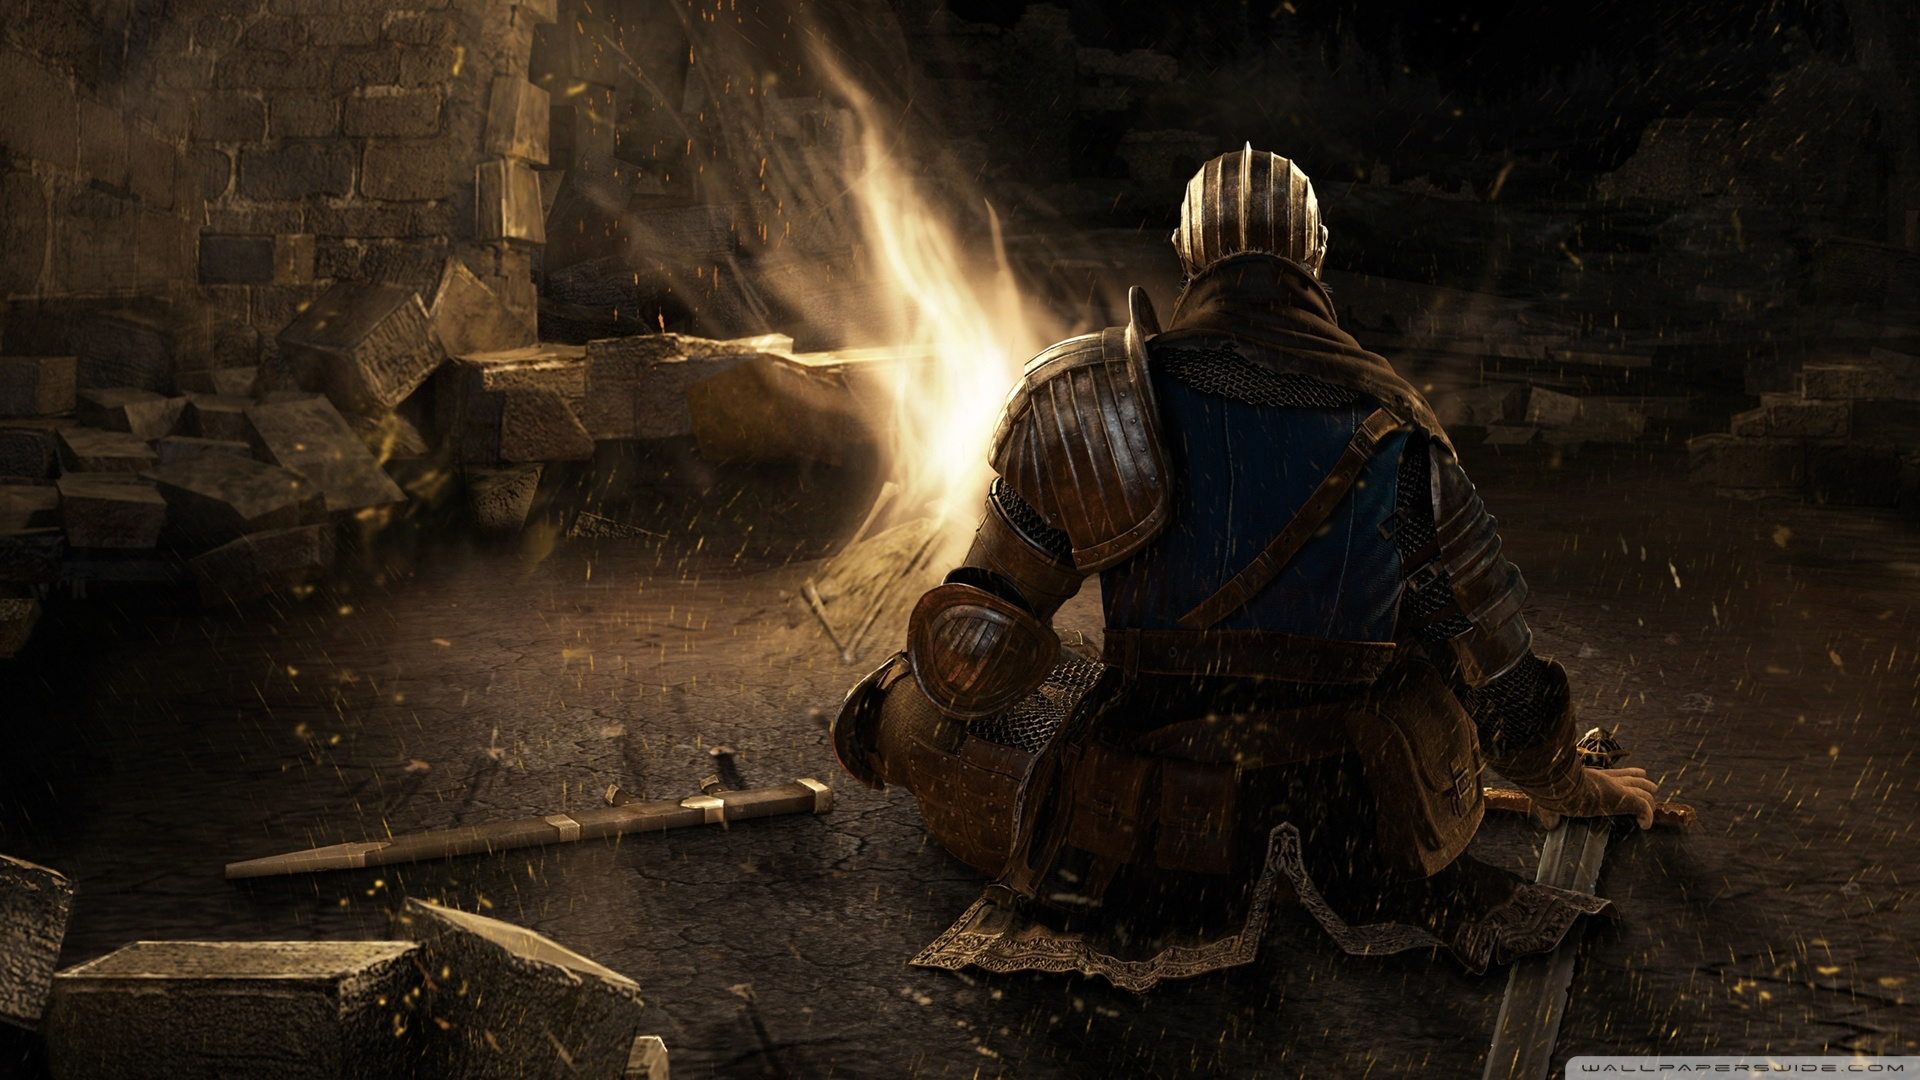 Dark Souls Wallpaper